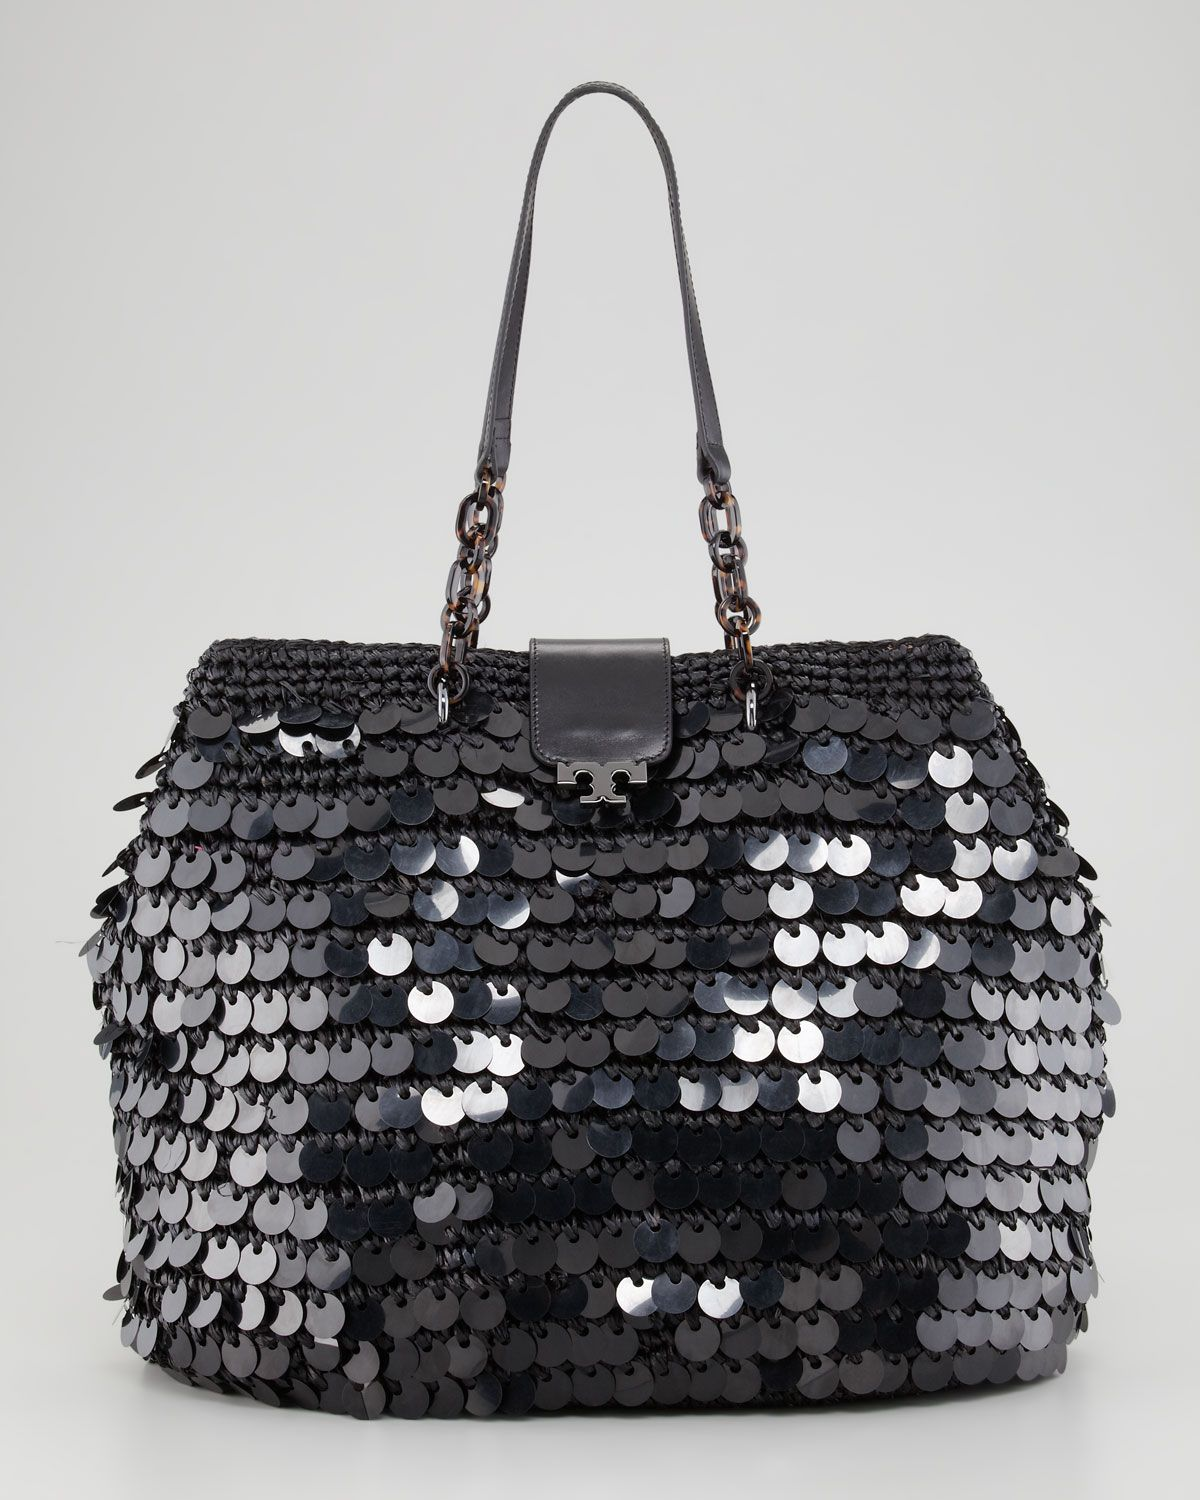 Tory Burch - Fache Large Sequin Tote Bag, Black - http://womenspin.com/handbags/tory-burch-fache-large-sequin-tote-bag-black/